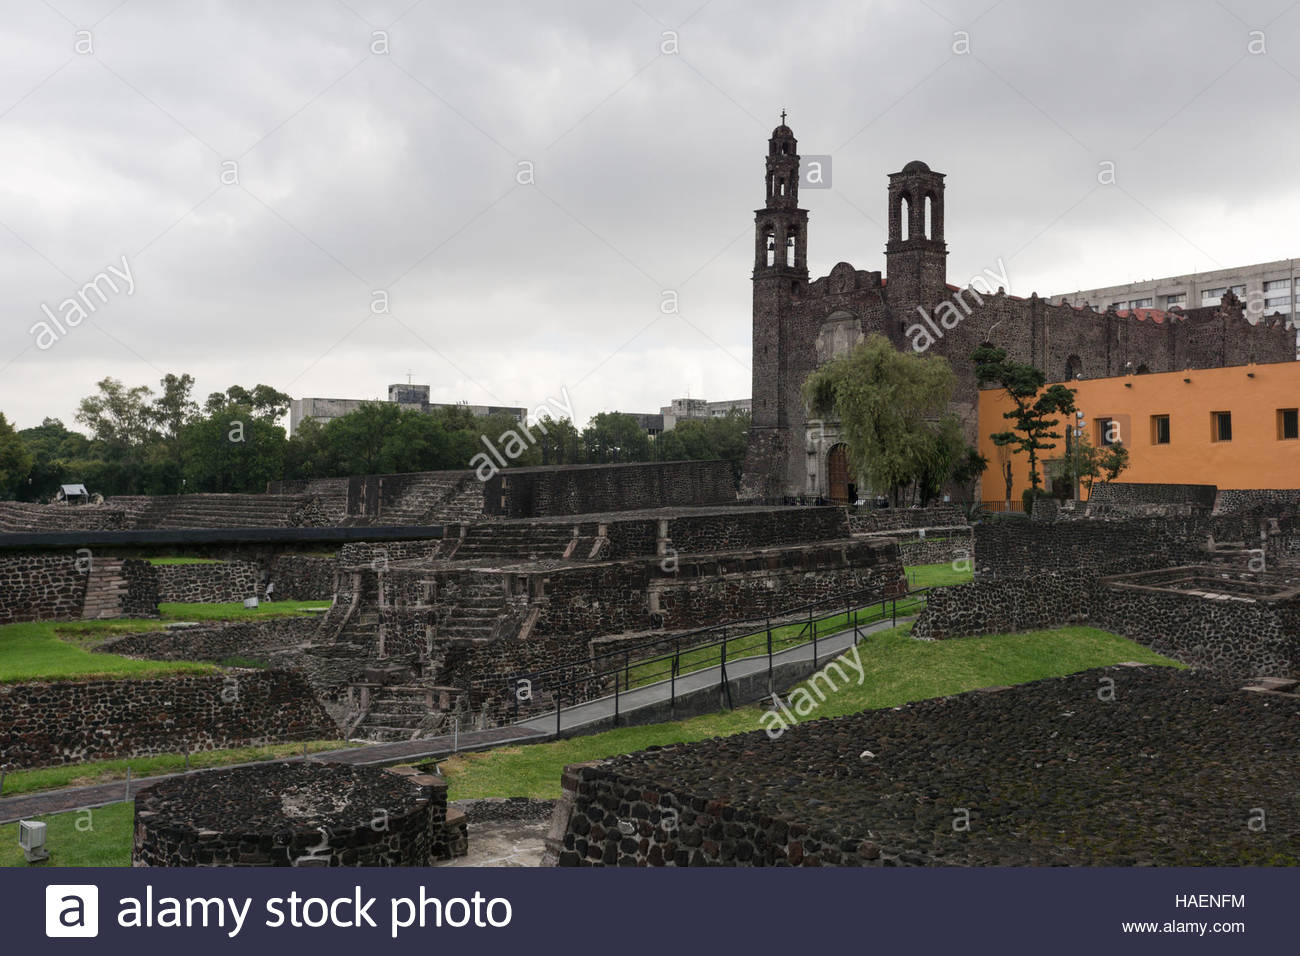 Plaza de las Tres Culturas (Square of the Three Cultures -- Aztec, Spanish, and modern Mexican. - Stock Image